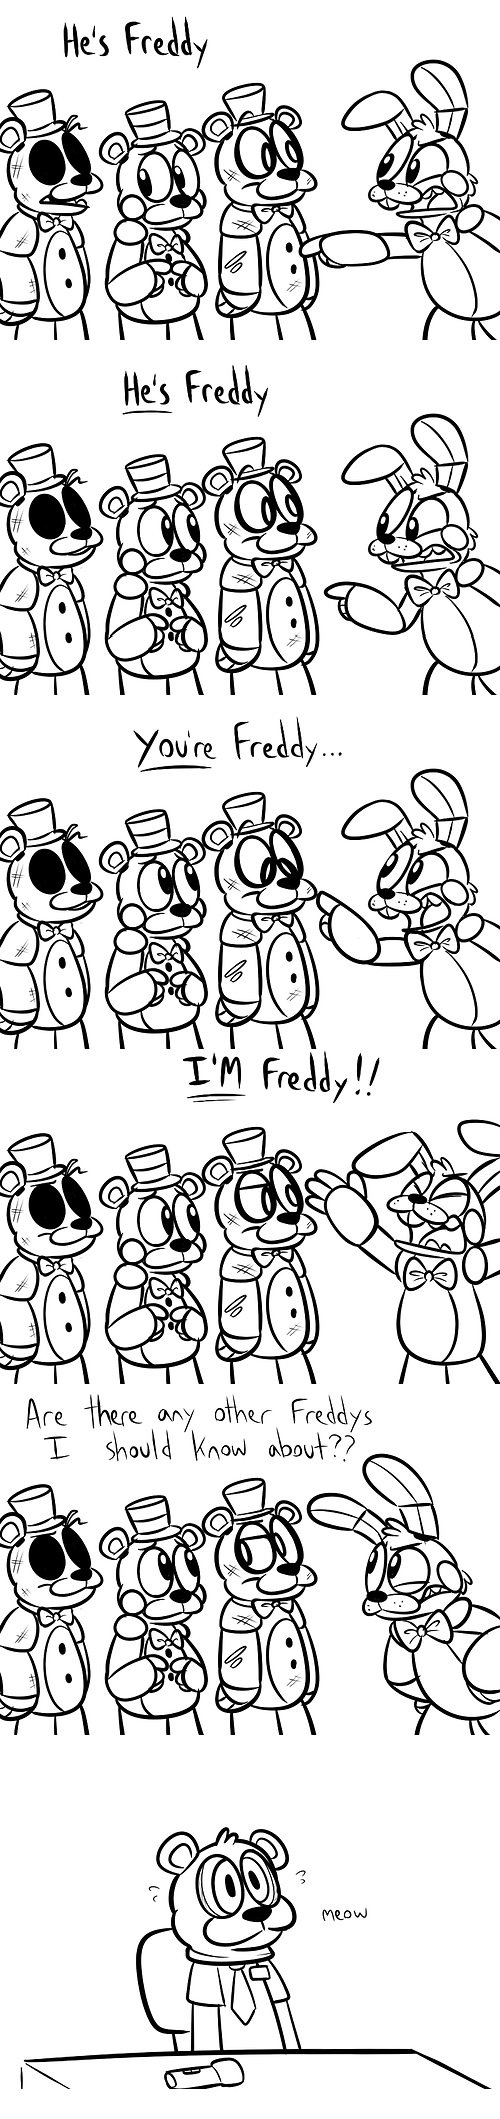 R u ready 4 freddy?. Because i sure don't. Ire bu, of') ogr- Frills. In a dream that I had, I got ultra gang-banged by Freddy and Foxy. It wasn't rape, I enjoyed every second of it. Then I realised that it wasn't a dream.